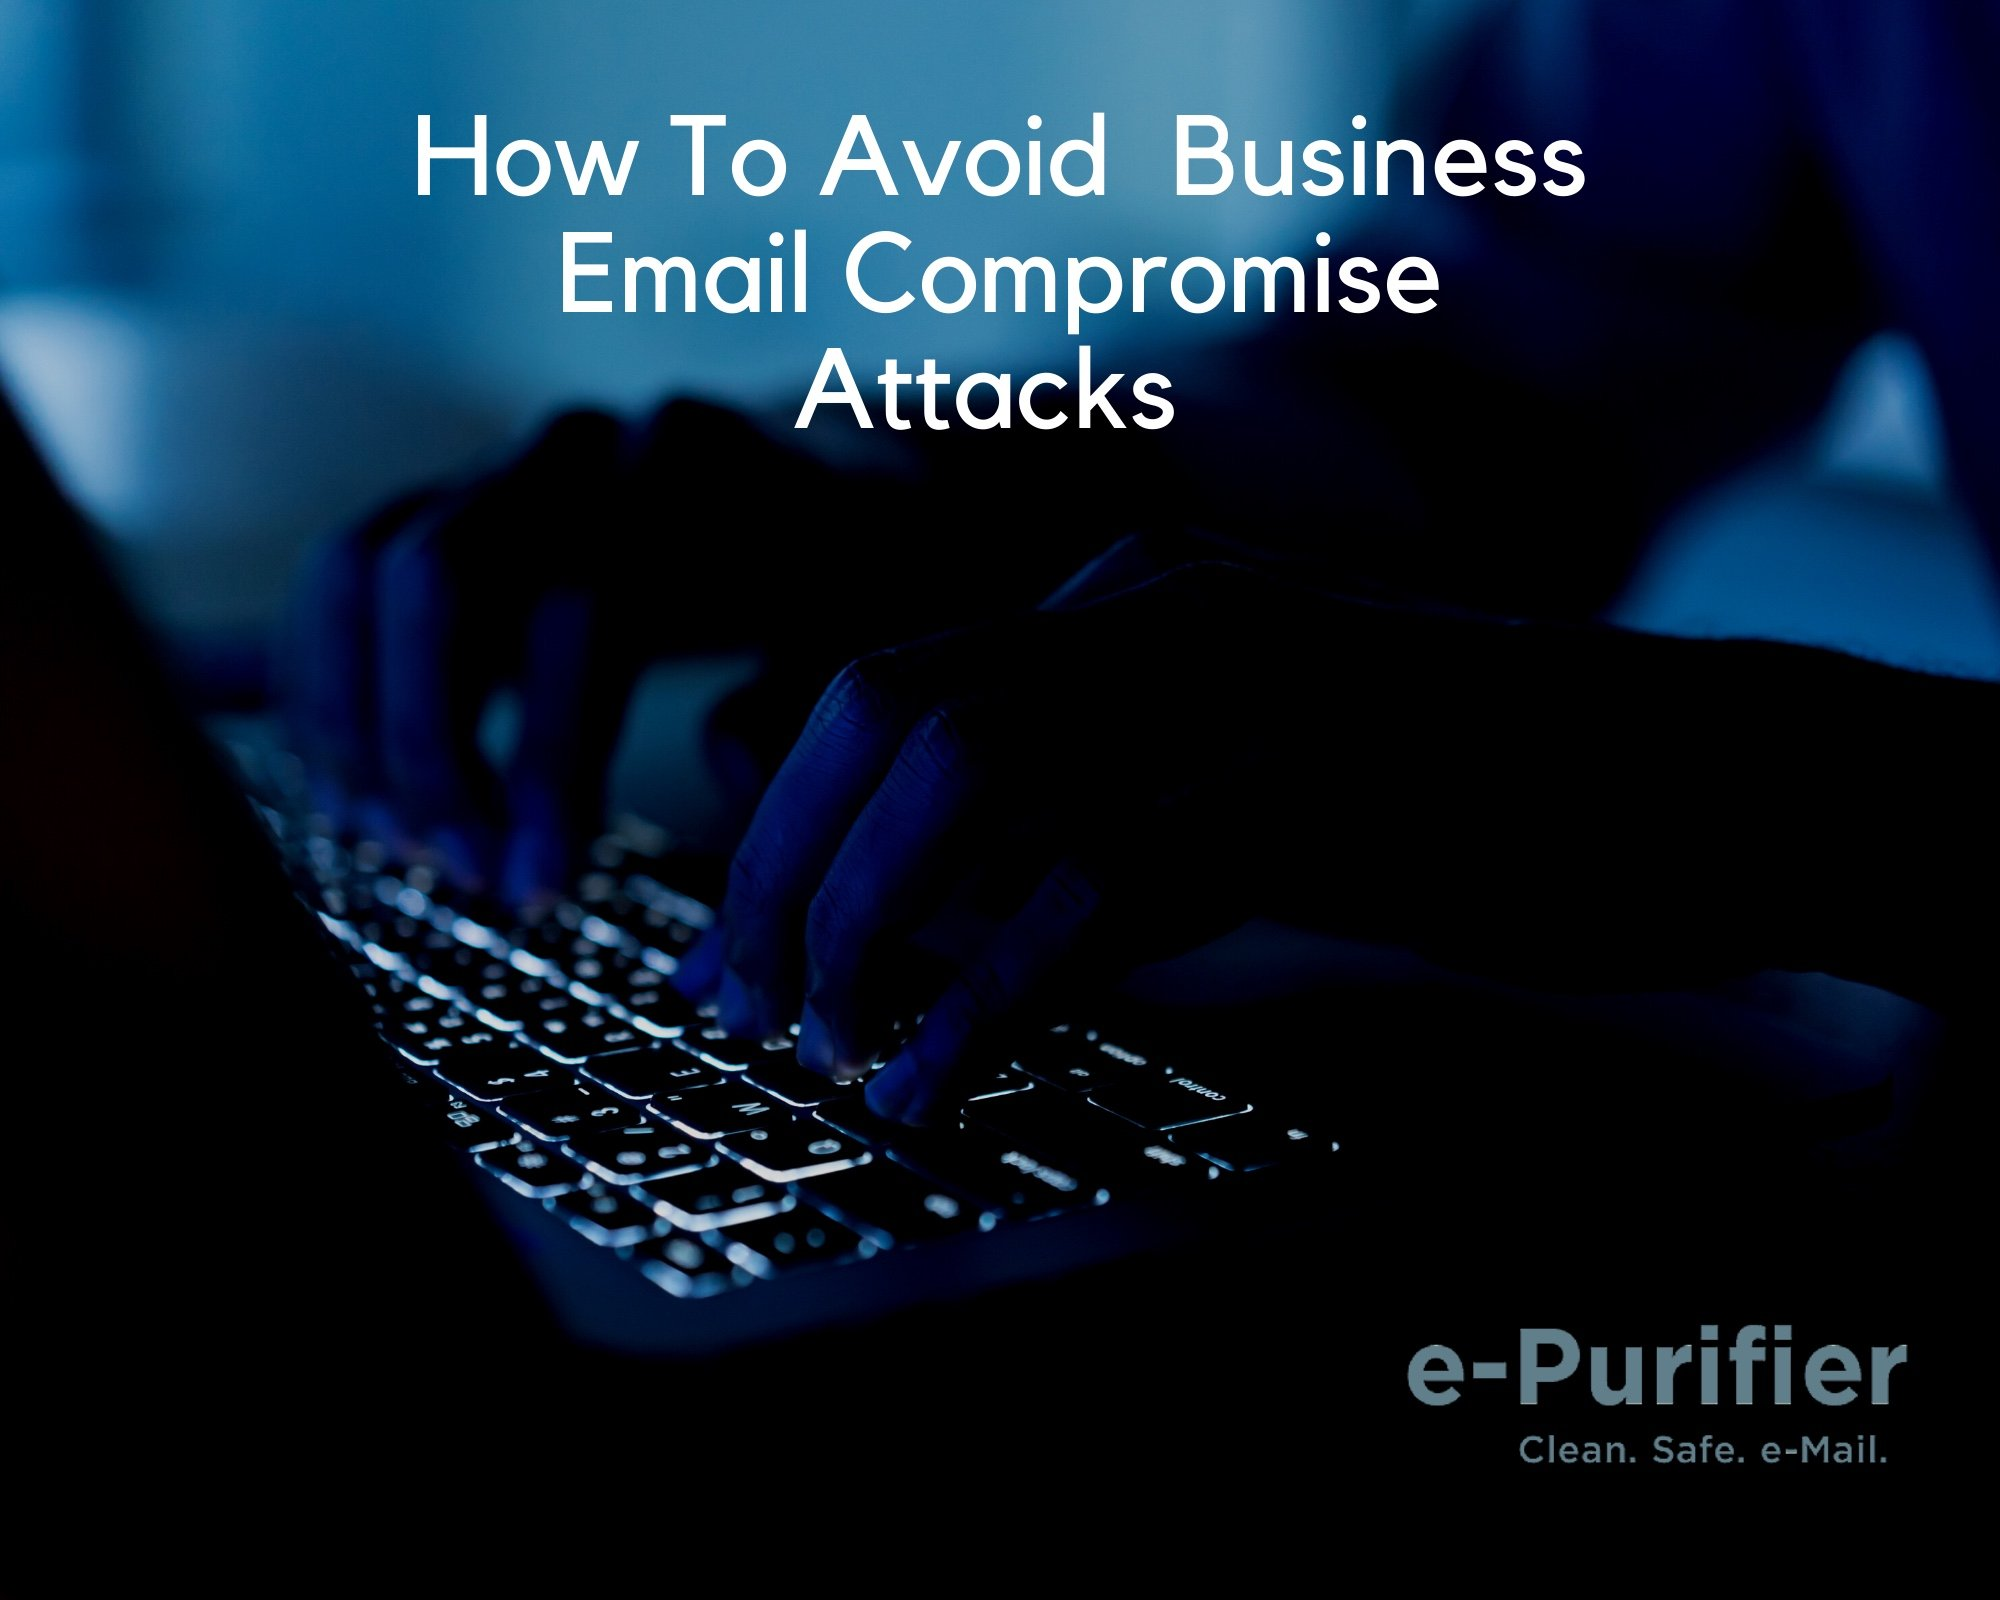 how to avoid email attacks - e-purifier